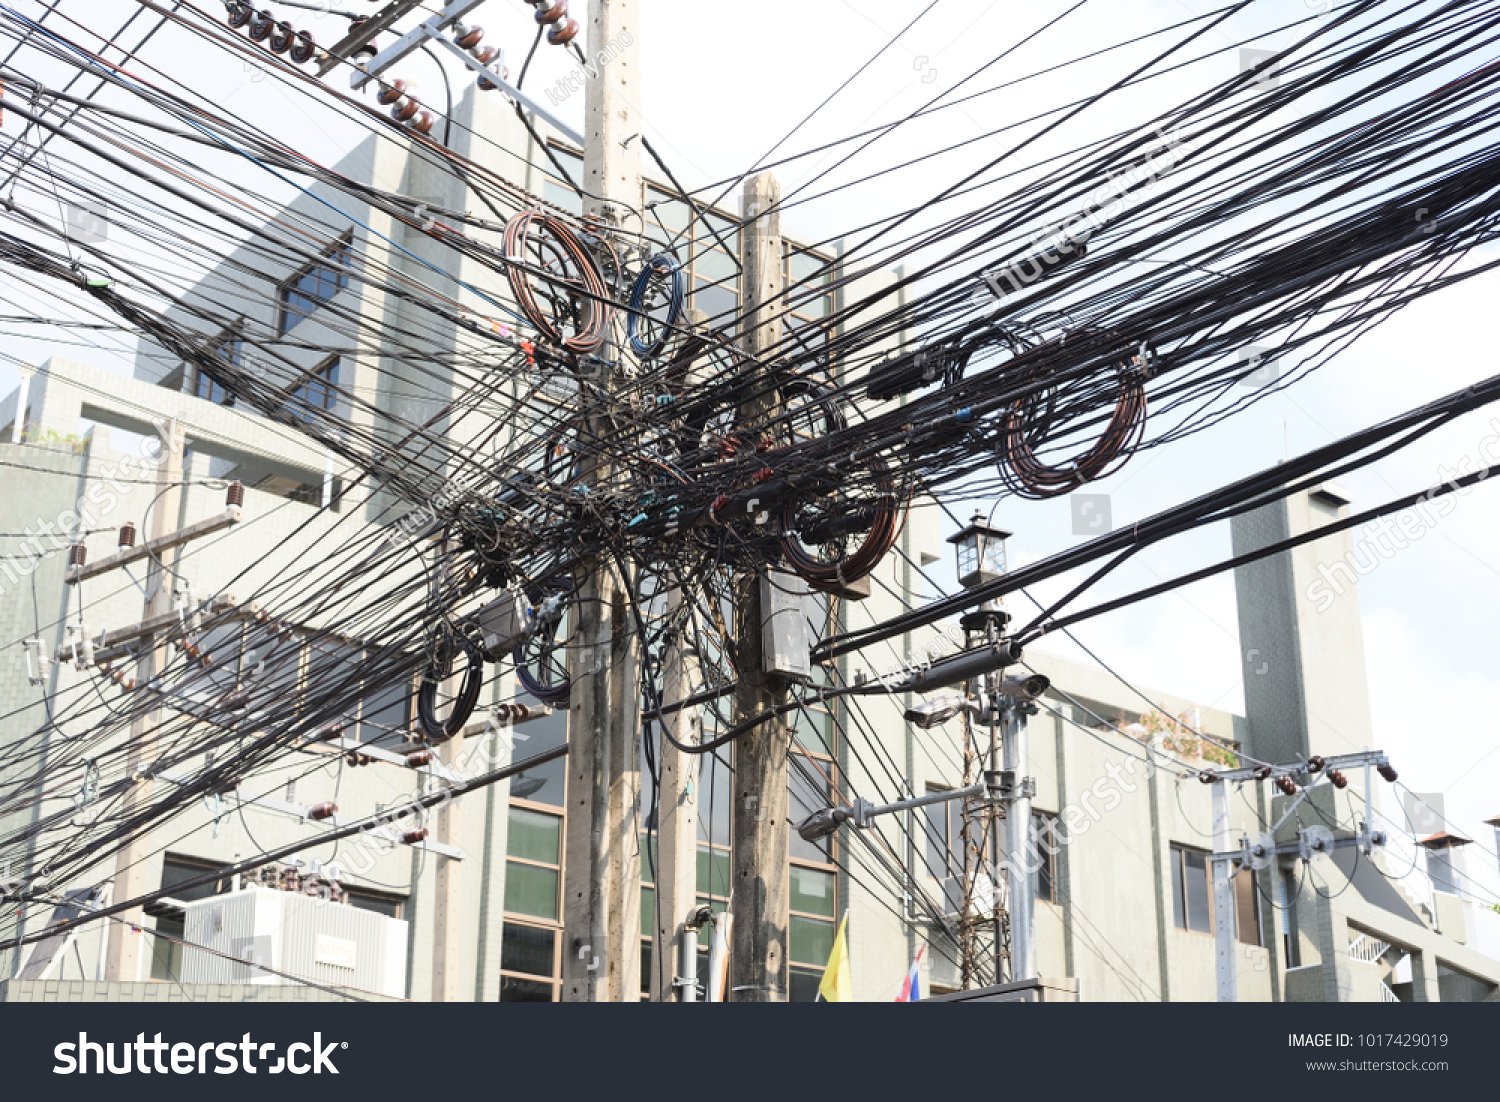 Bad Wire Assemblage Cables Wires On Stock Photo (Royalty Free ...